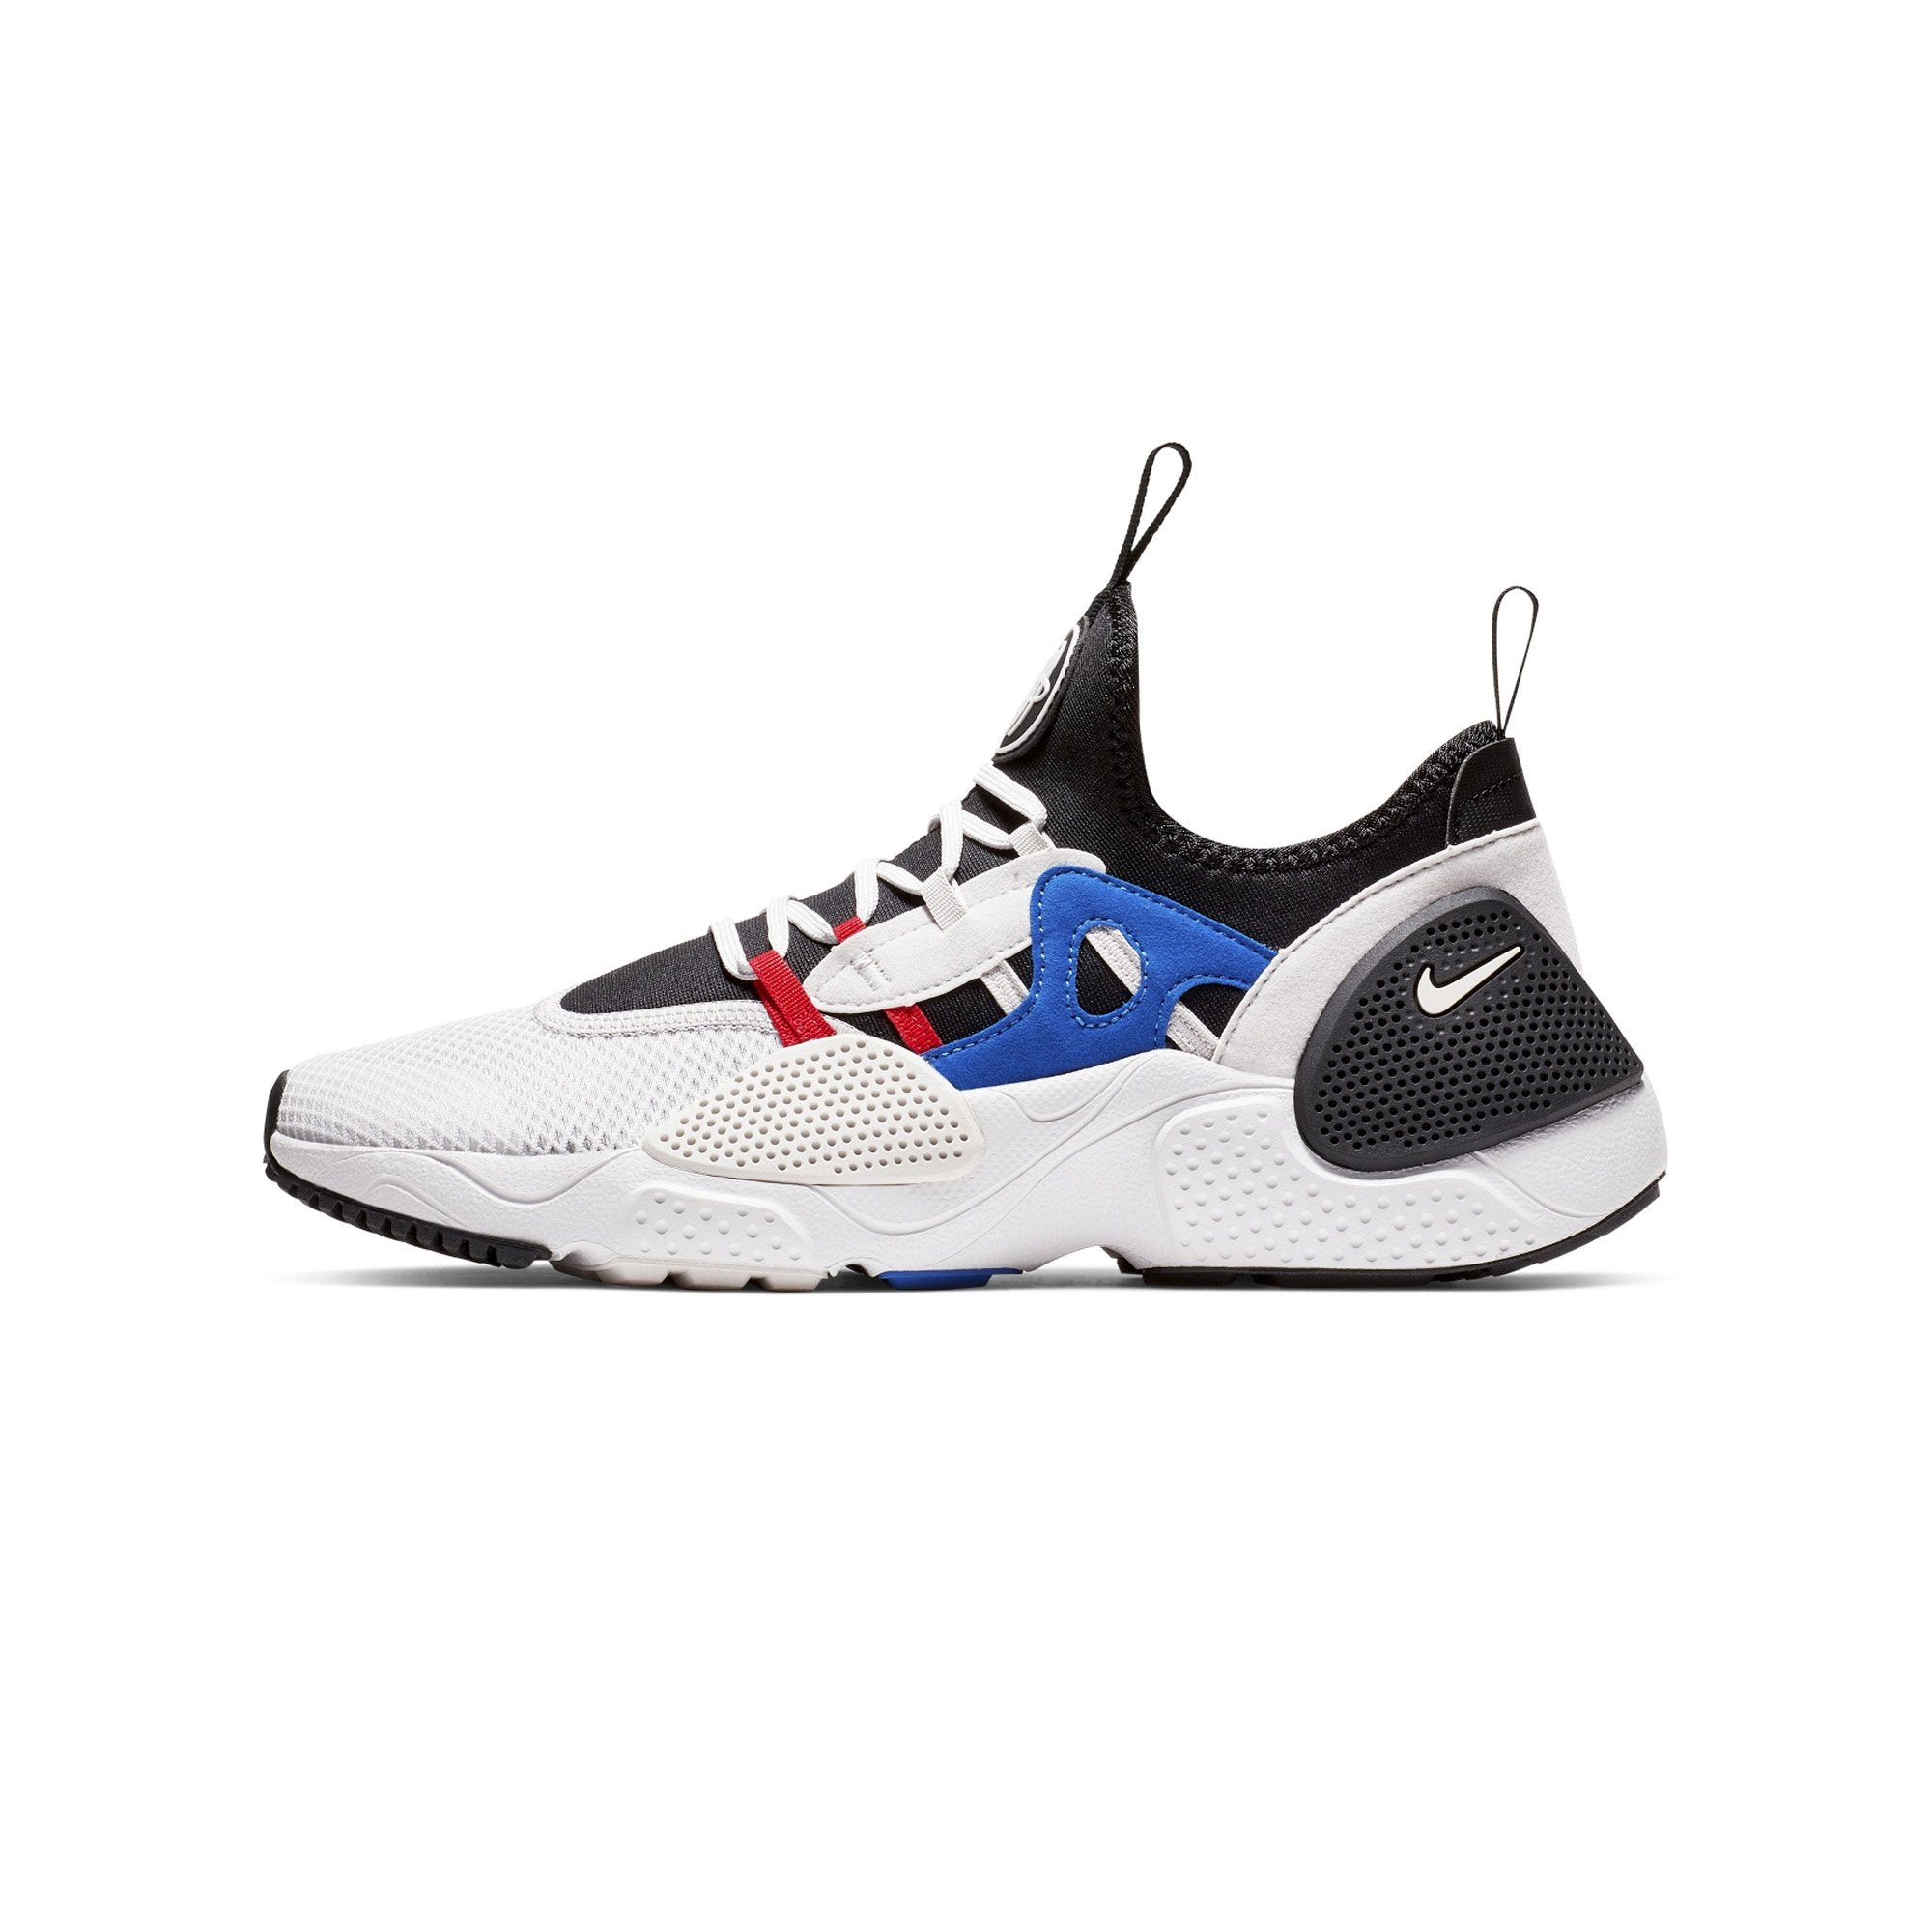 801a8d09177f Details about Nike Huarache E.D.G.E TXT QS Black Game Royal University Red  Grey AO1697-001